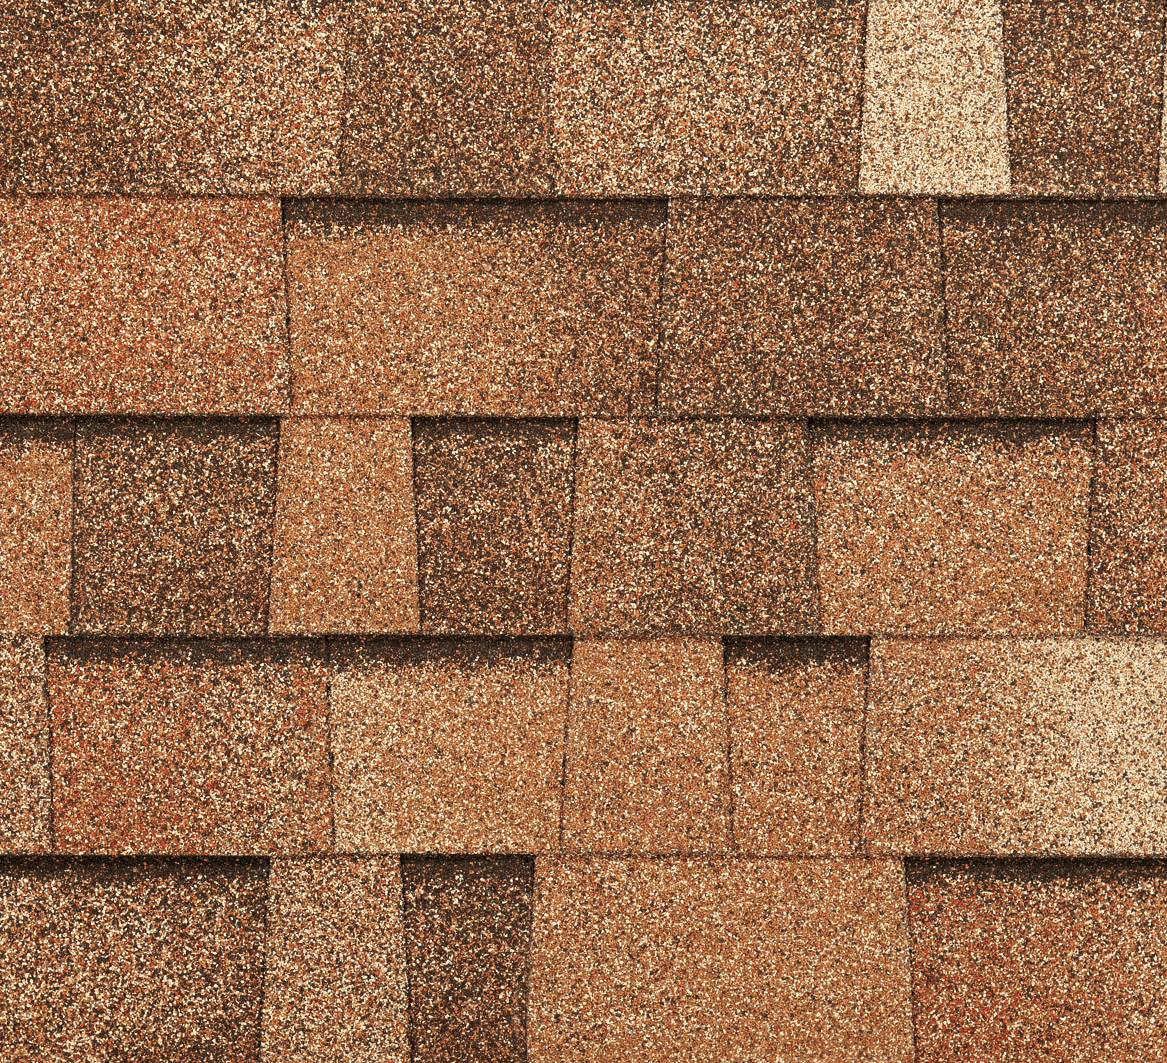 Rustic Tan Get A Roof That Compliments Your Home And Add Curb Appeal Roofing Shingles Shingling Roof Shingles Cool Roof